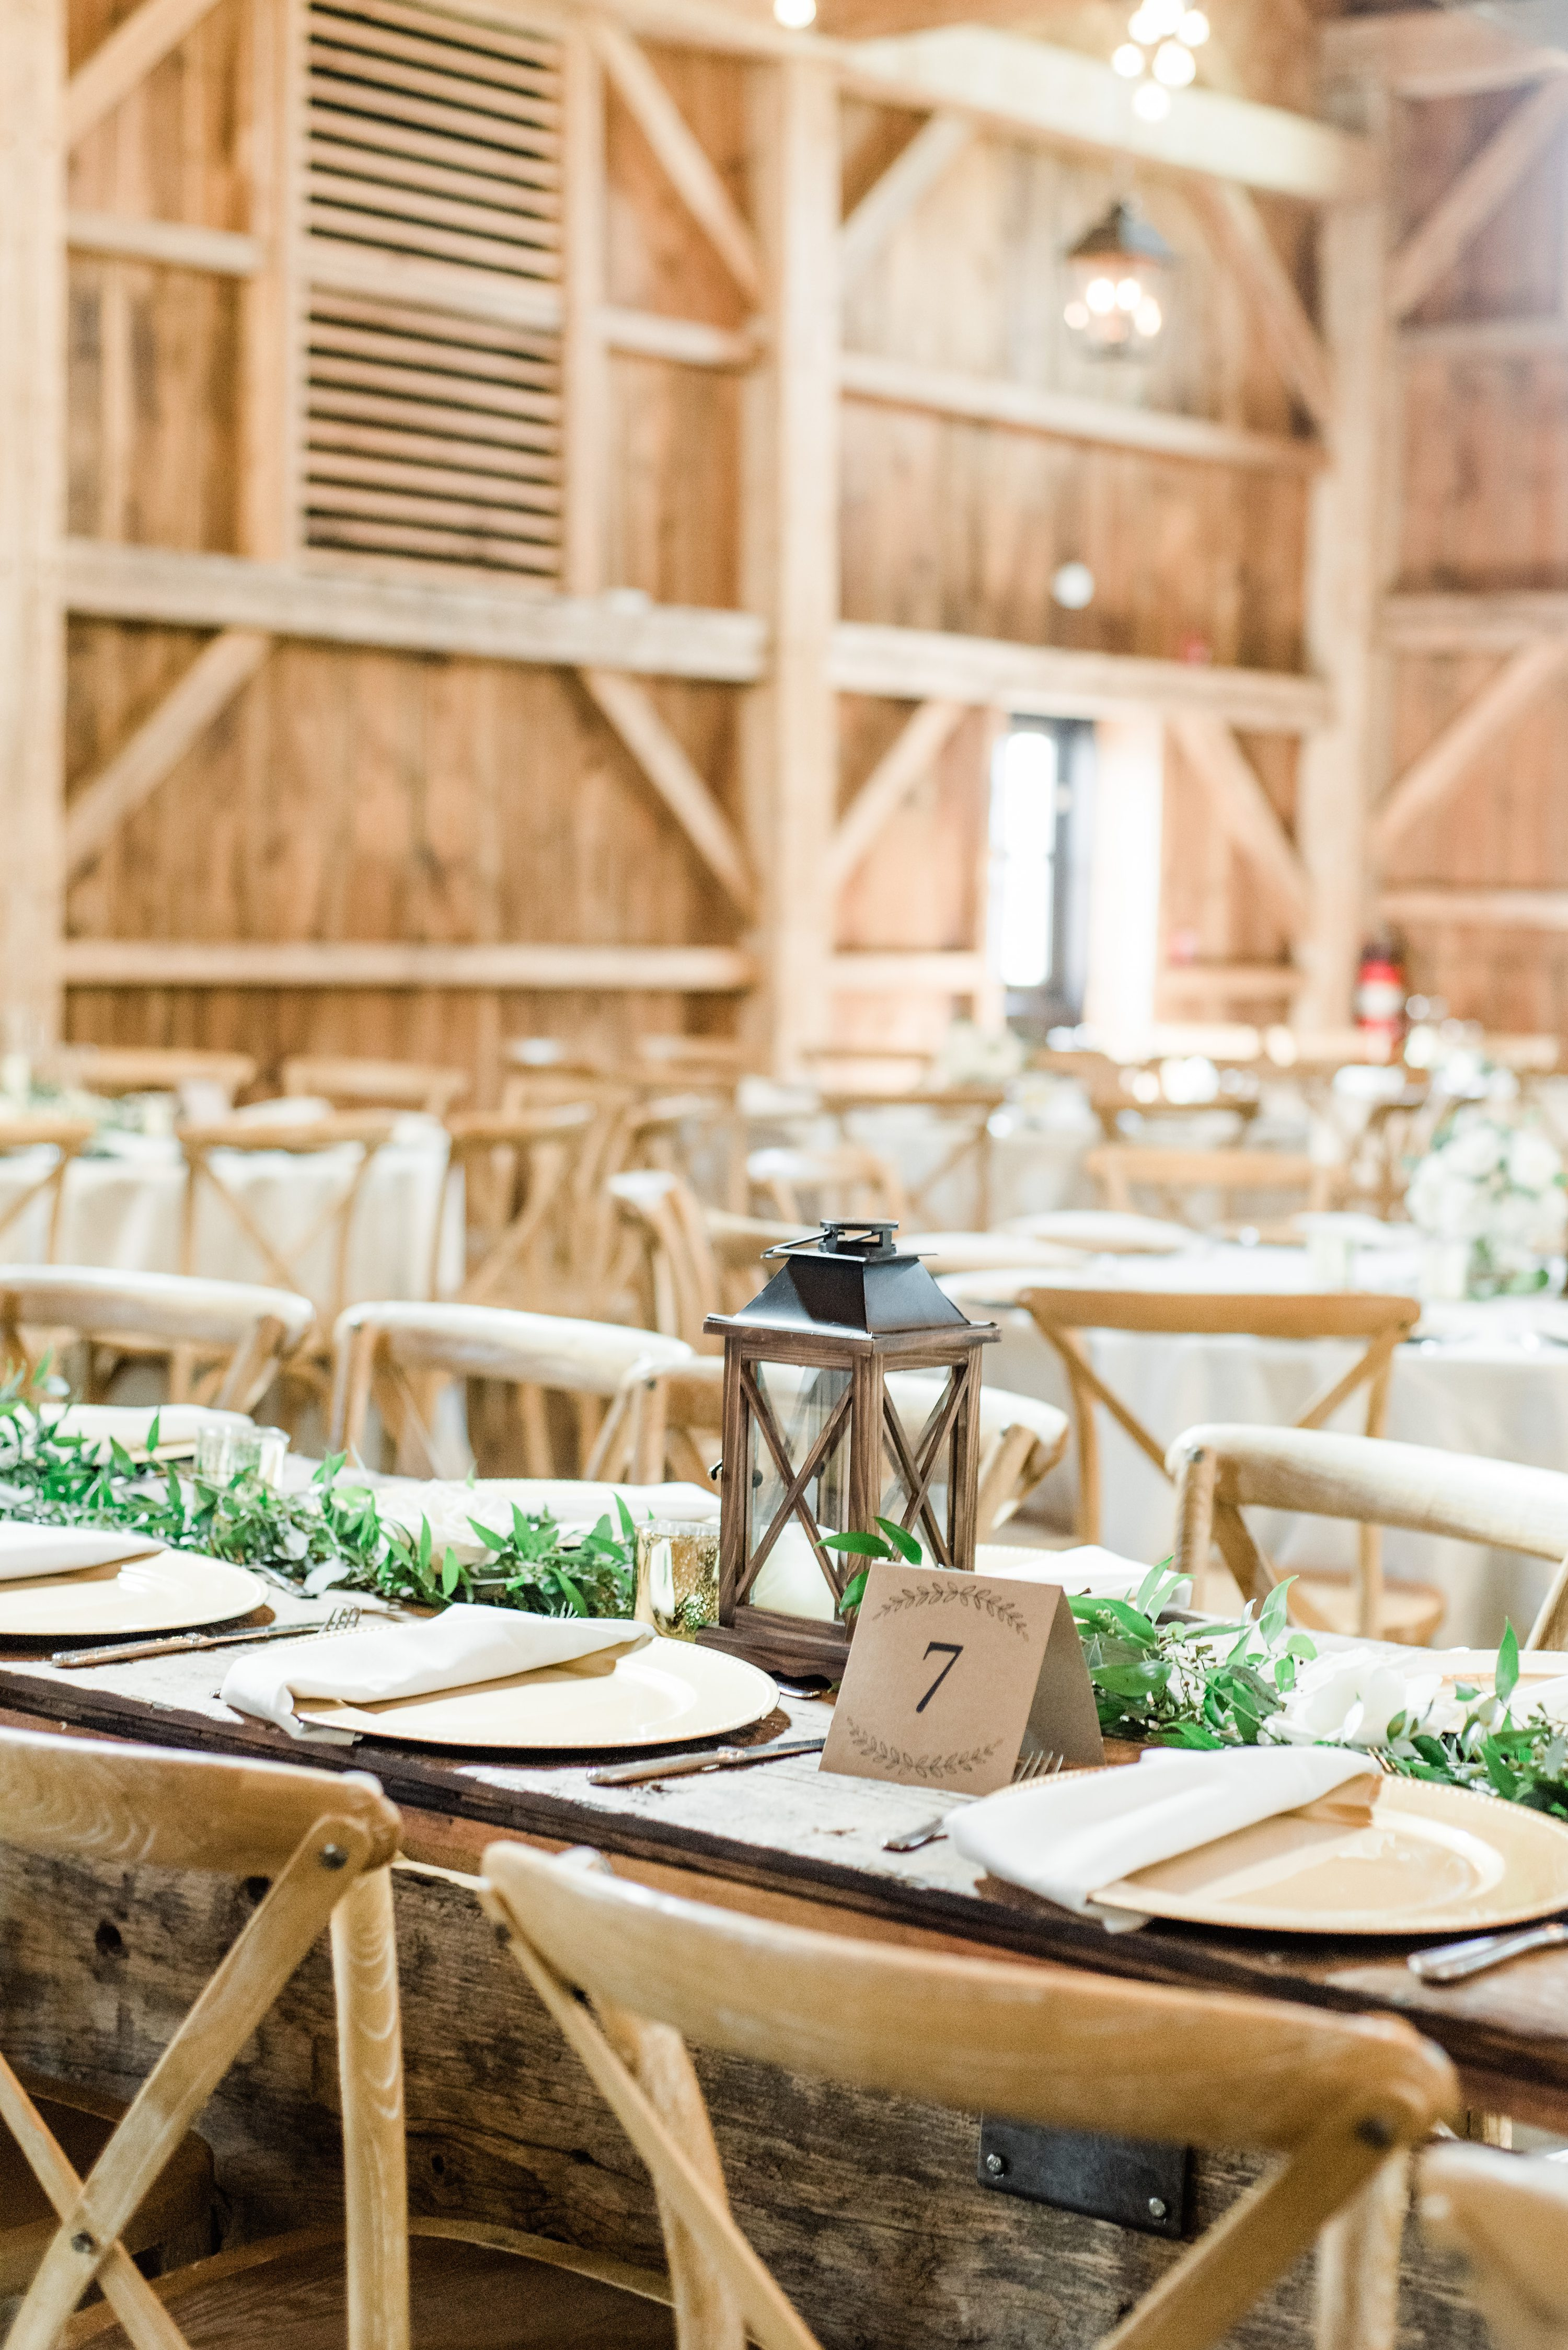 Husband & Wife Team, and we loved the way the decorated the barn with tons of greenery and a neutral color palette. They ended the wedding with a fun sparkler exit surrounded by their family and friends